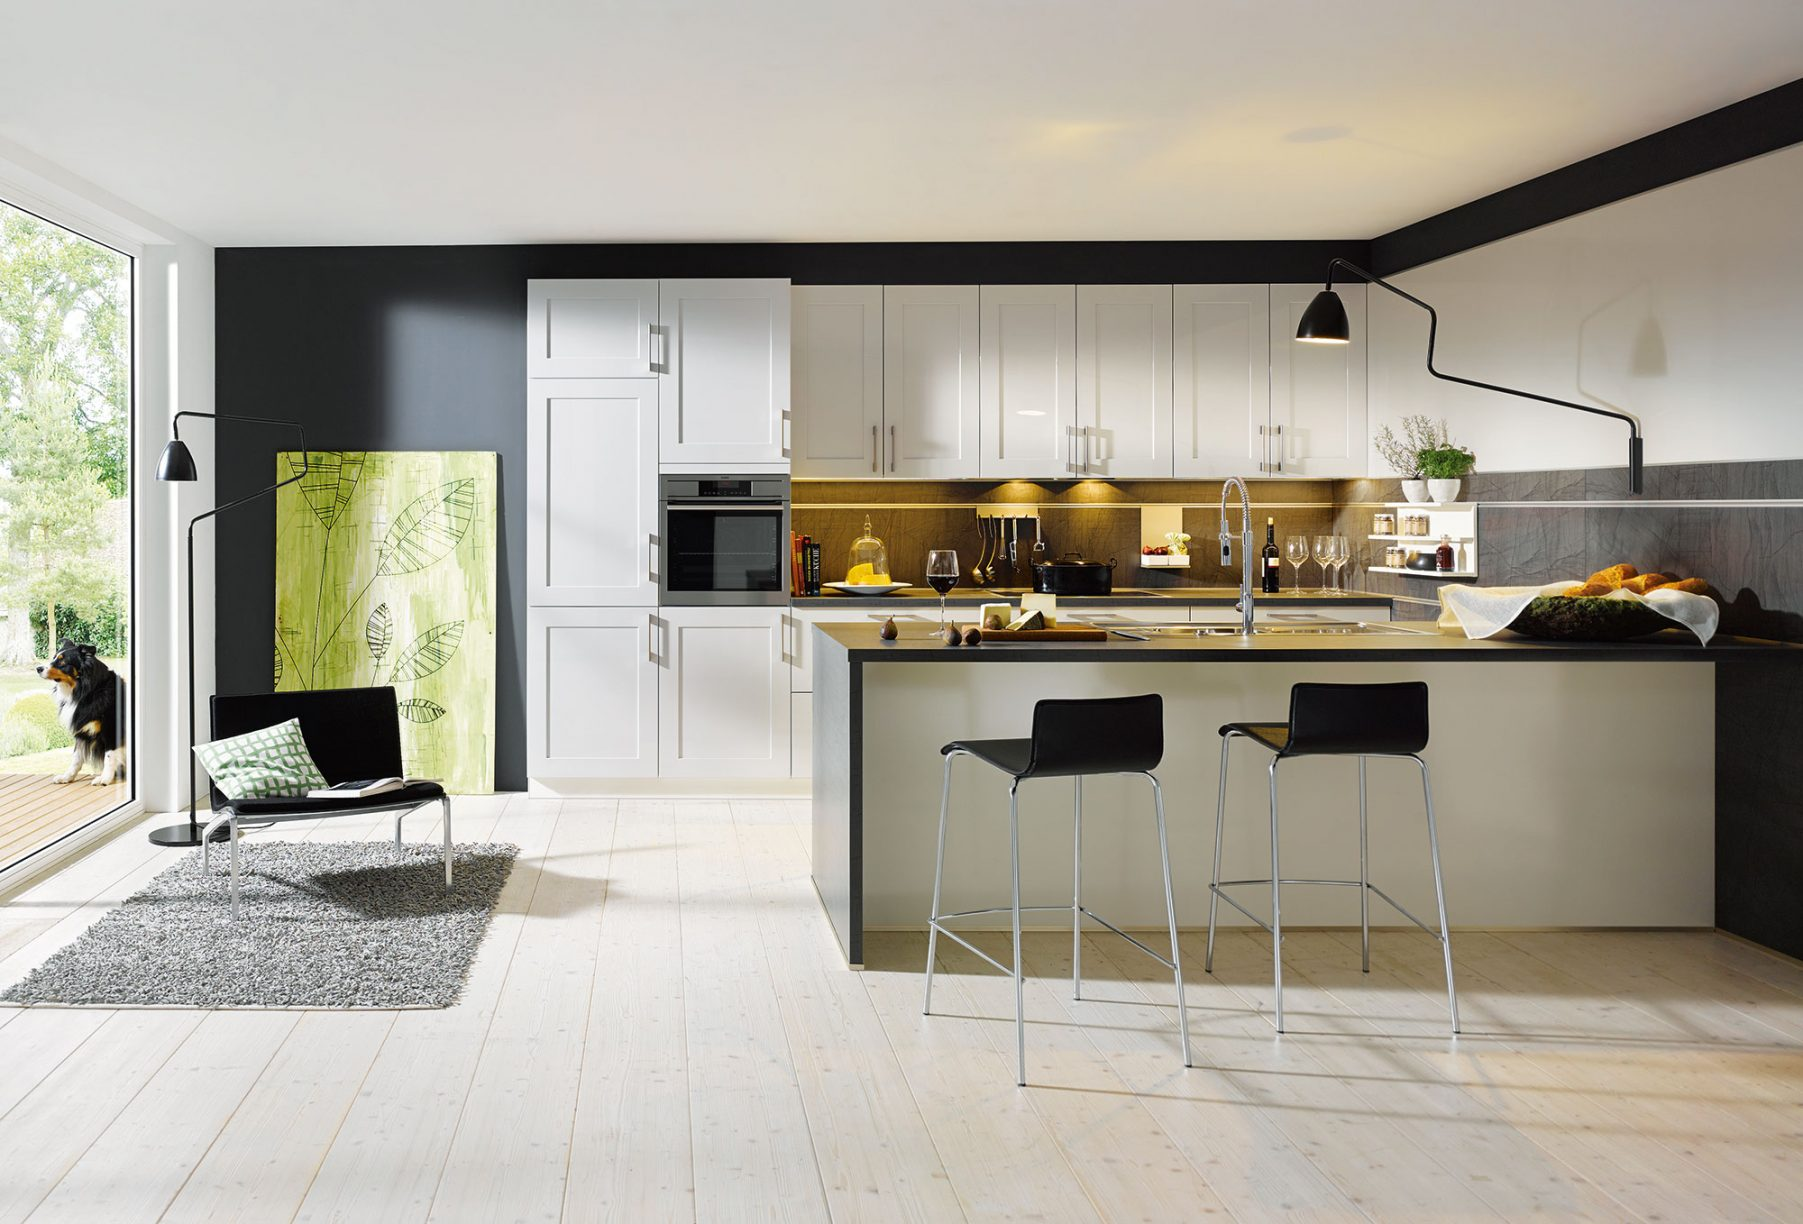 Schüller Küchen Riva 4 Traditional Kitchens To Make Your Neighbours Jealous With